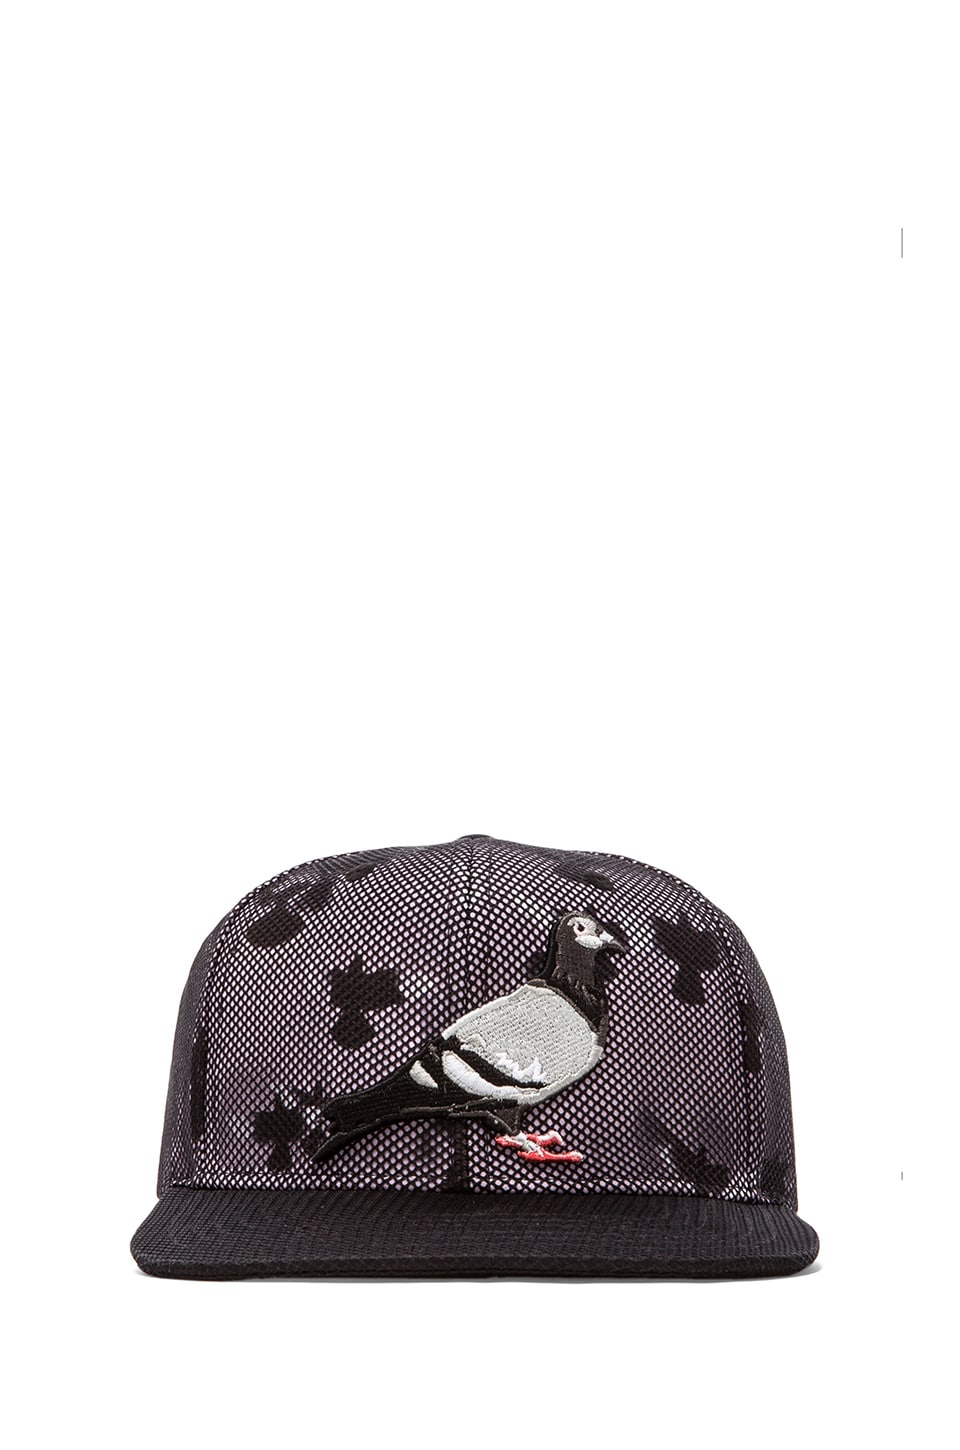 Staple Inverse Pigeon Snapback in Black